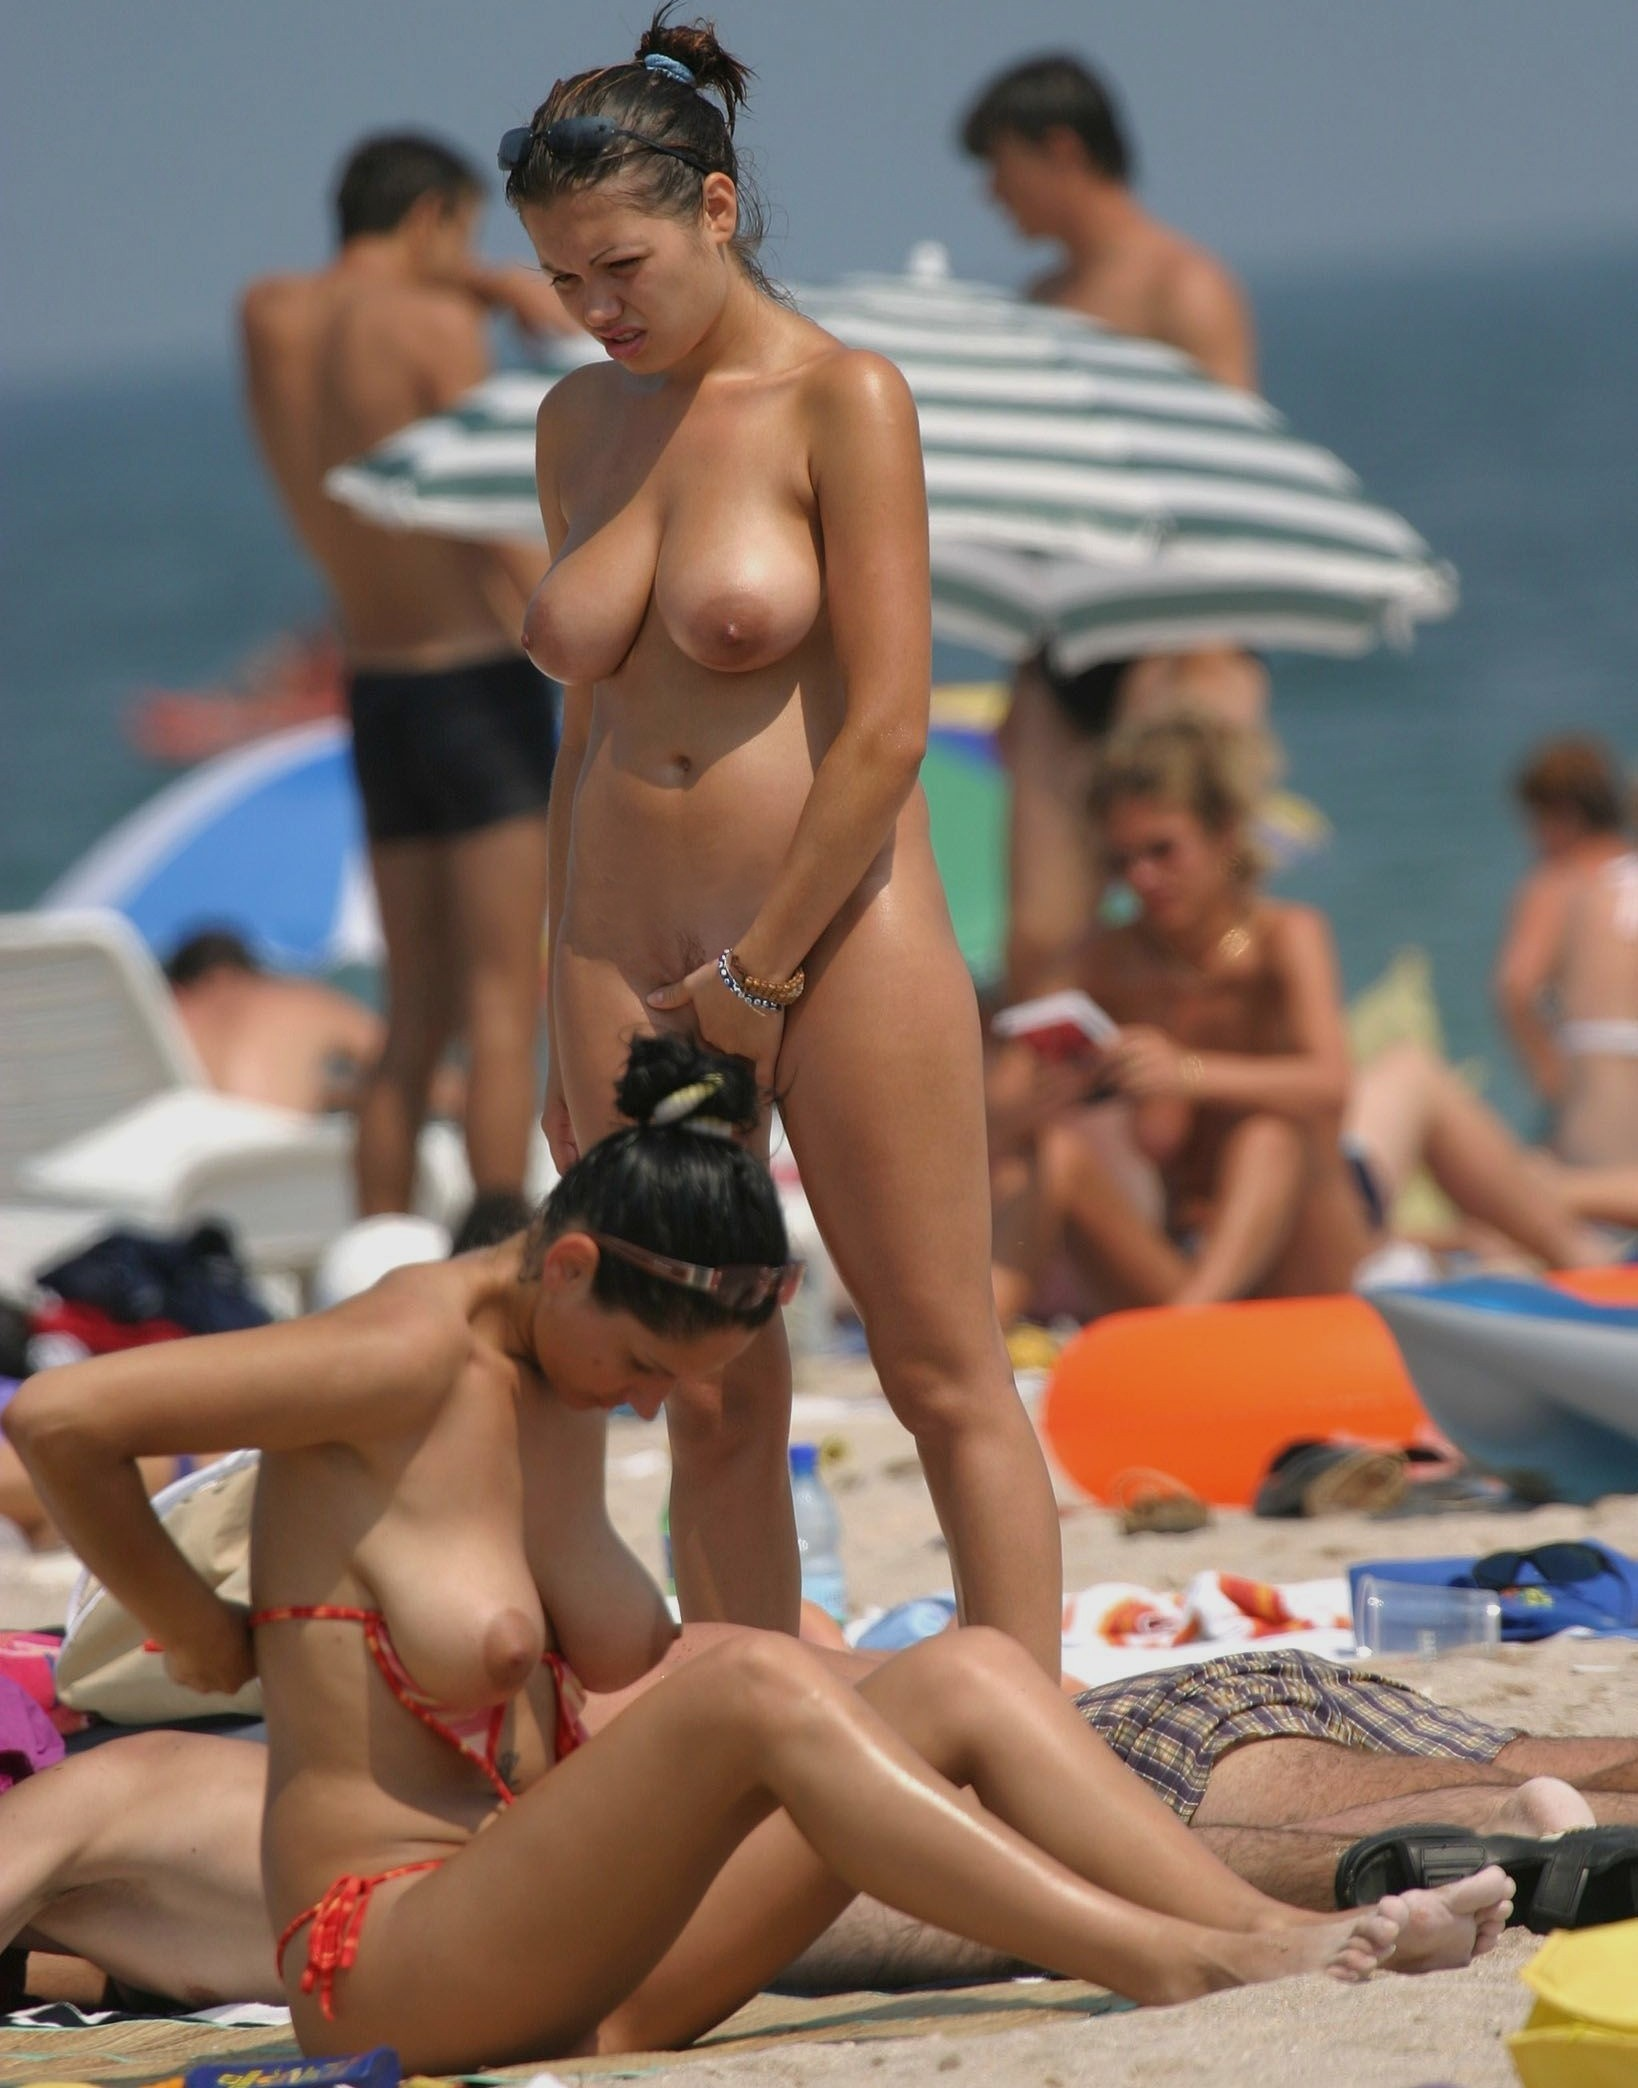 nudists-girls-boobs-beach-topless-mix-vol7-15